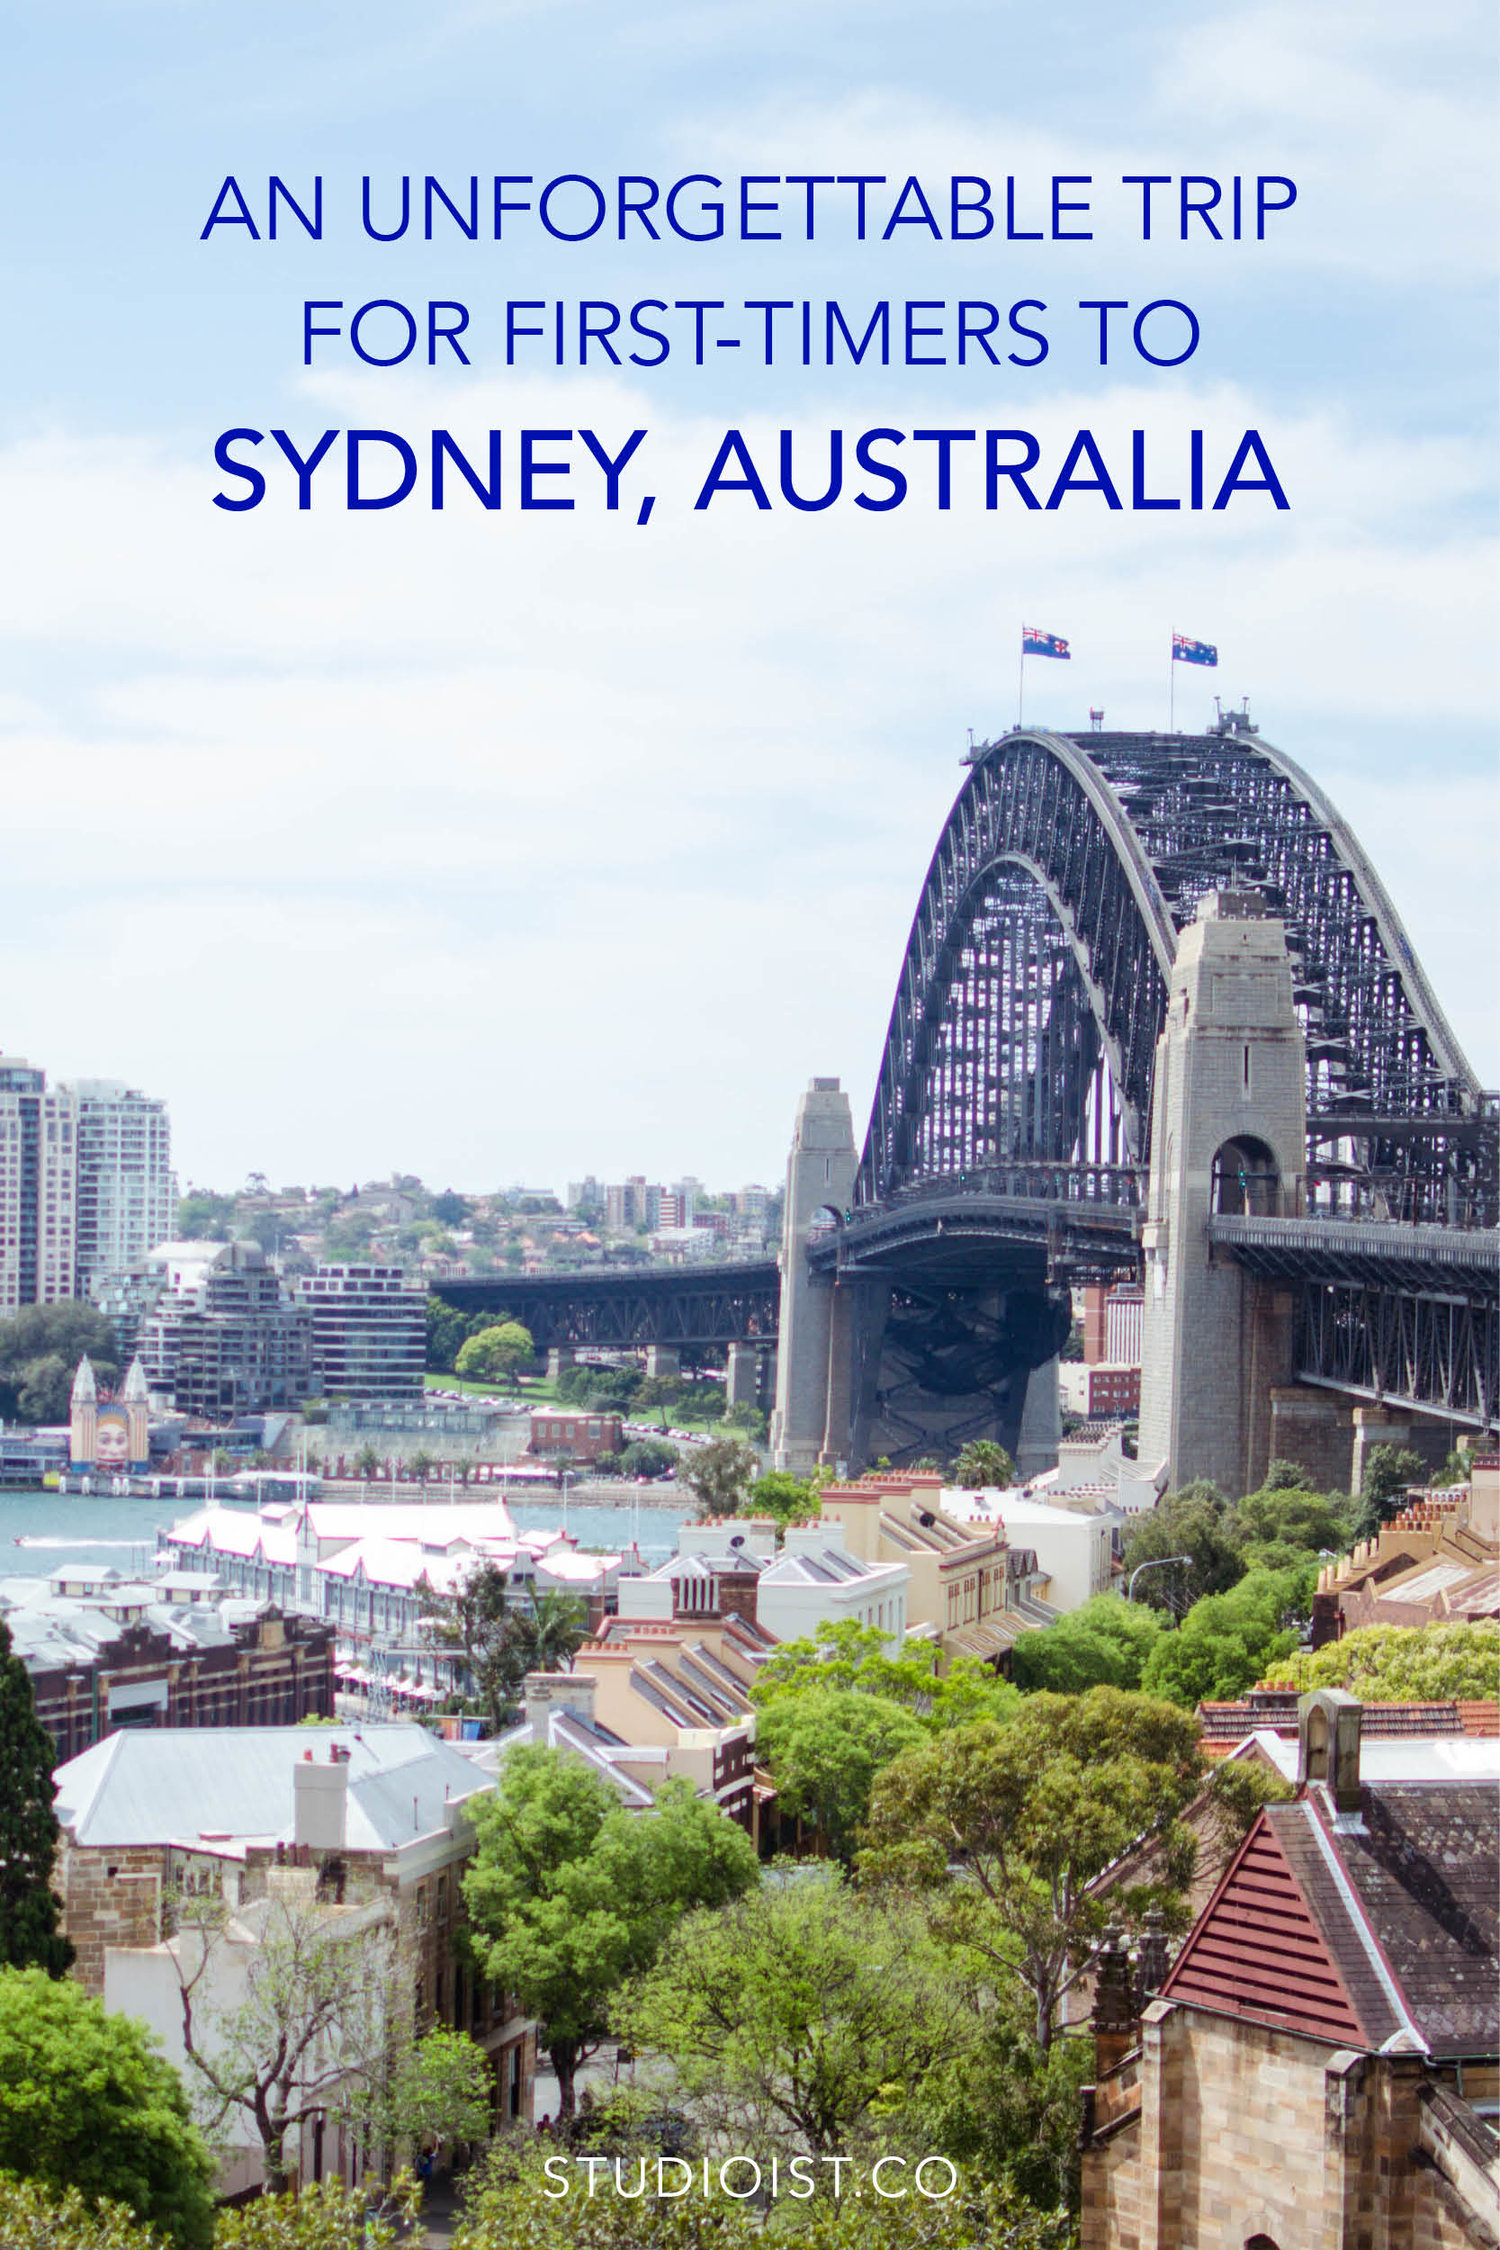 48e822ea31d Travel Itinerary - 14 Days in Sydney Australia - Unforgettable Trip.jpg